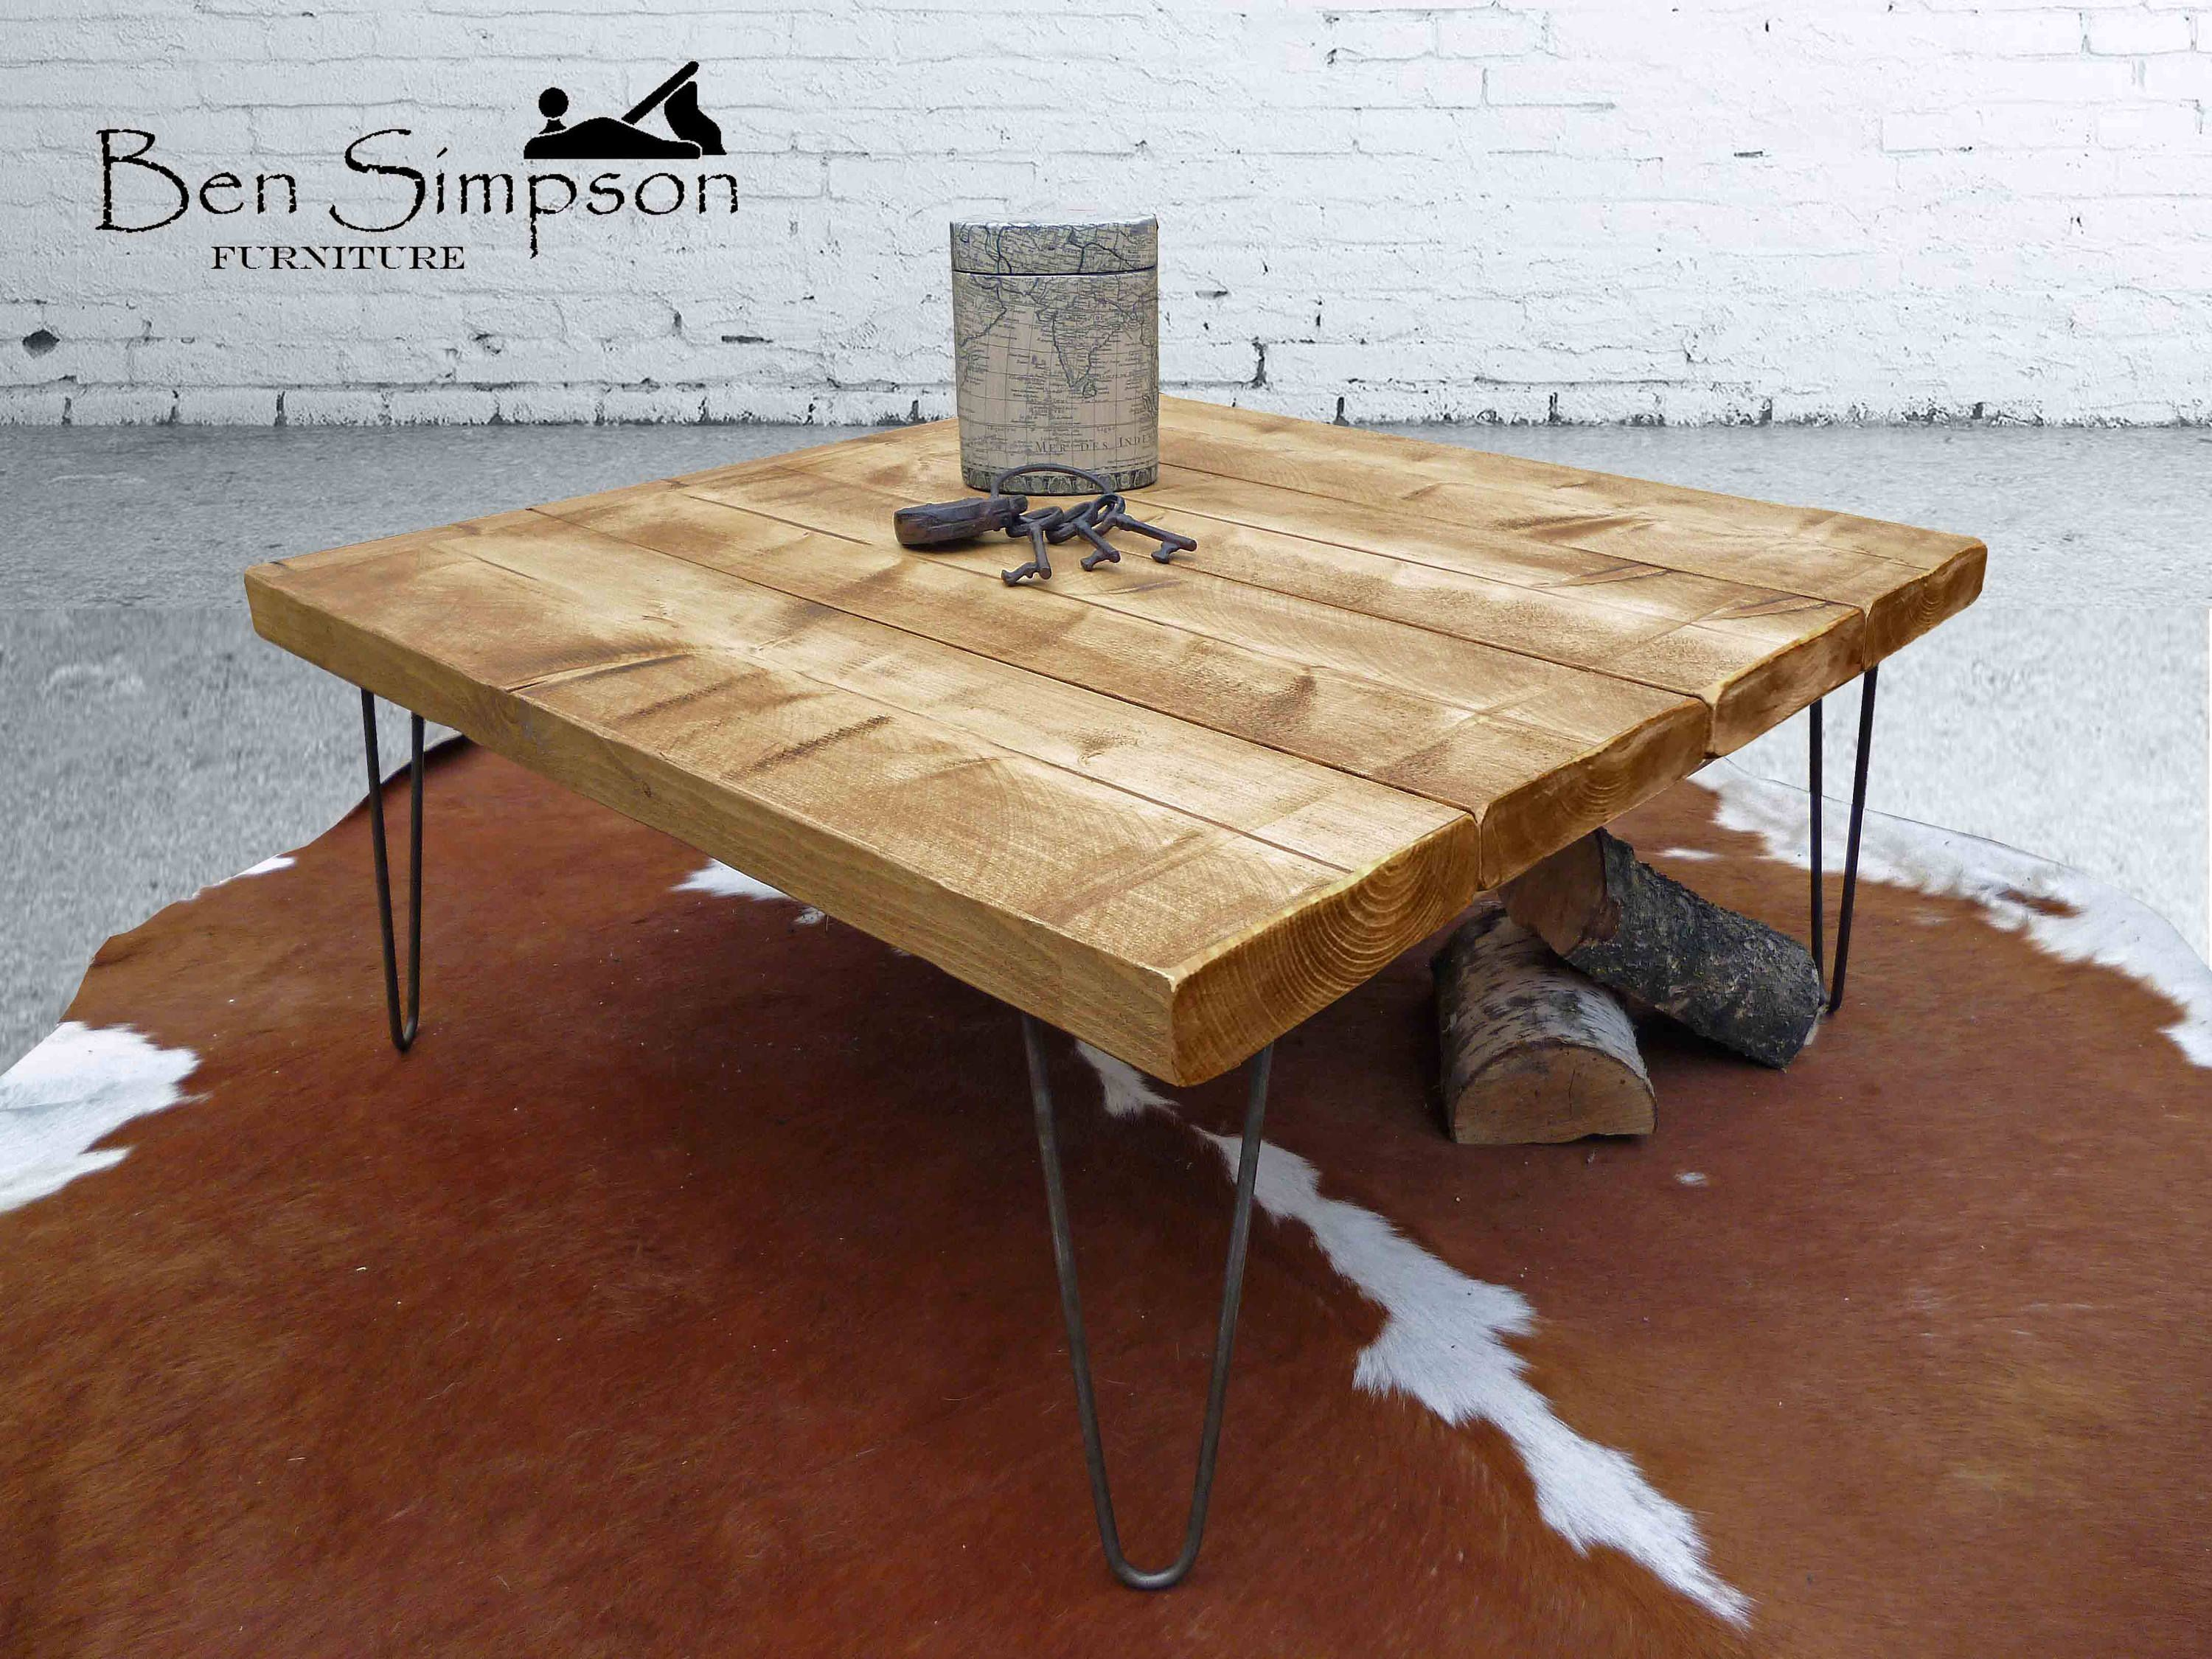 Rustic Coffee Table With Industrial Hairpin Legs Handcrafted Using Solid Wood 35cm Height Ben Simpson Furniture Square Wooden Coffee Table Coffee Table Rustic Coffee Tables